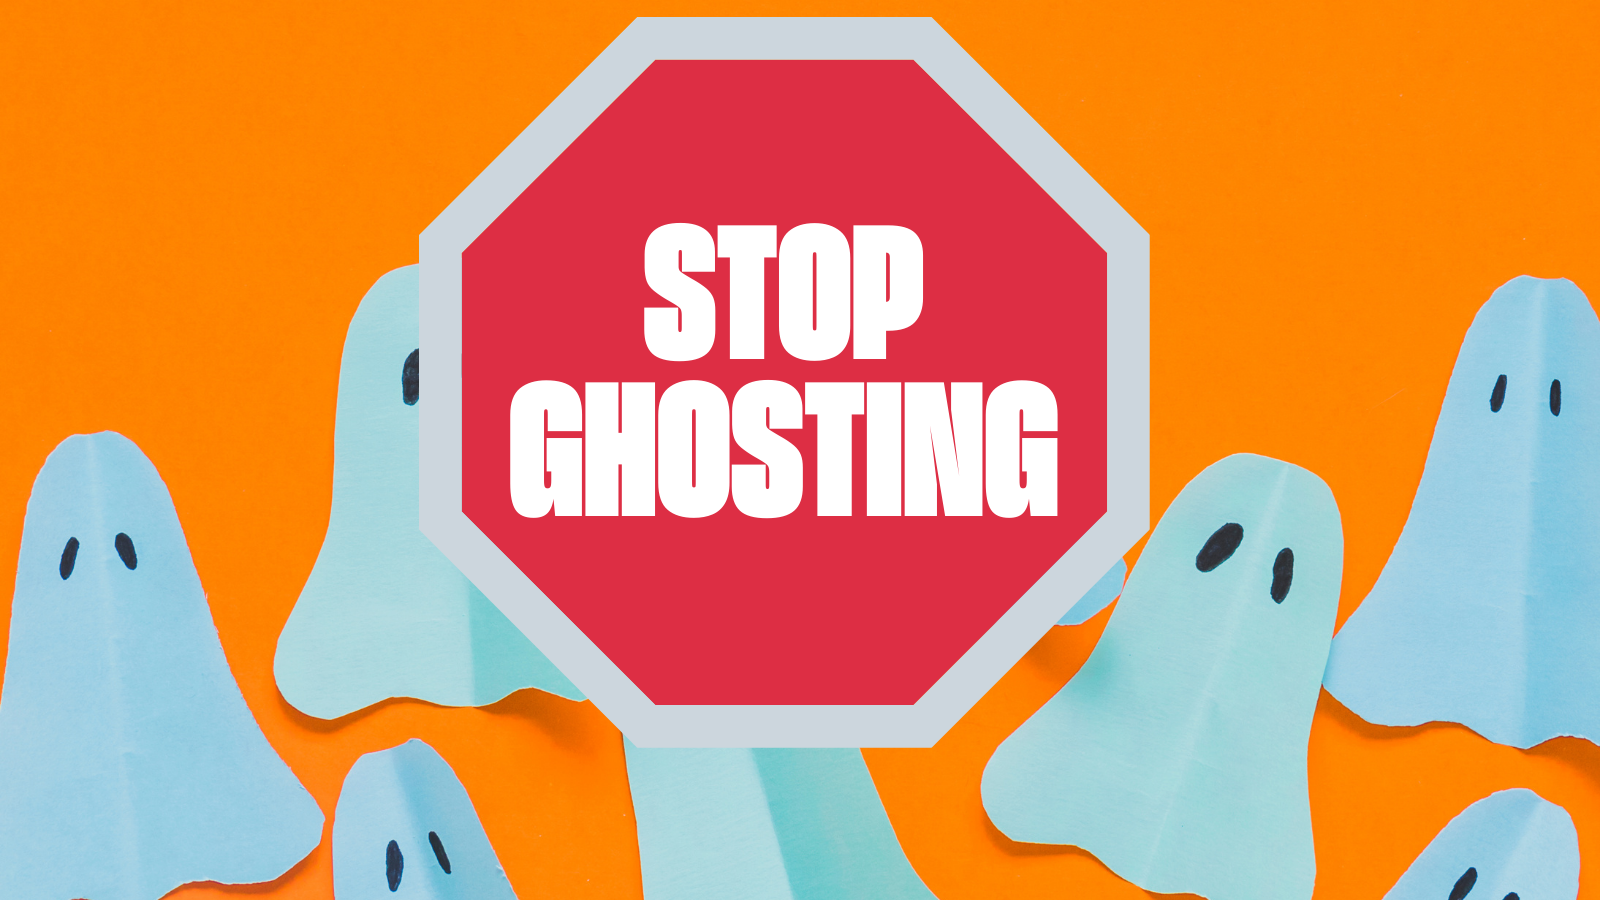 How to Stop Ghosting in its Tracks